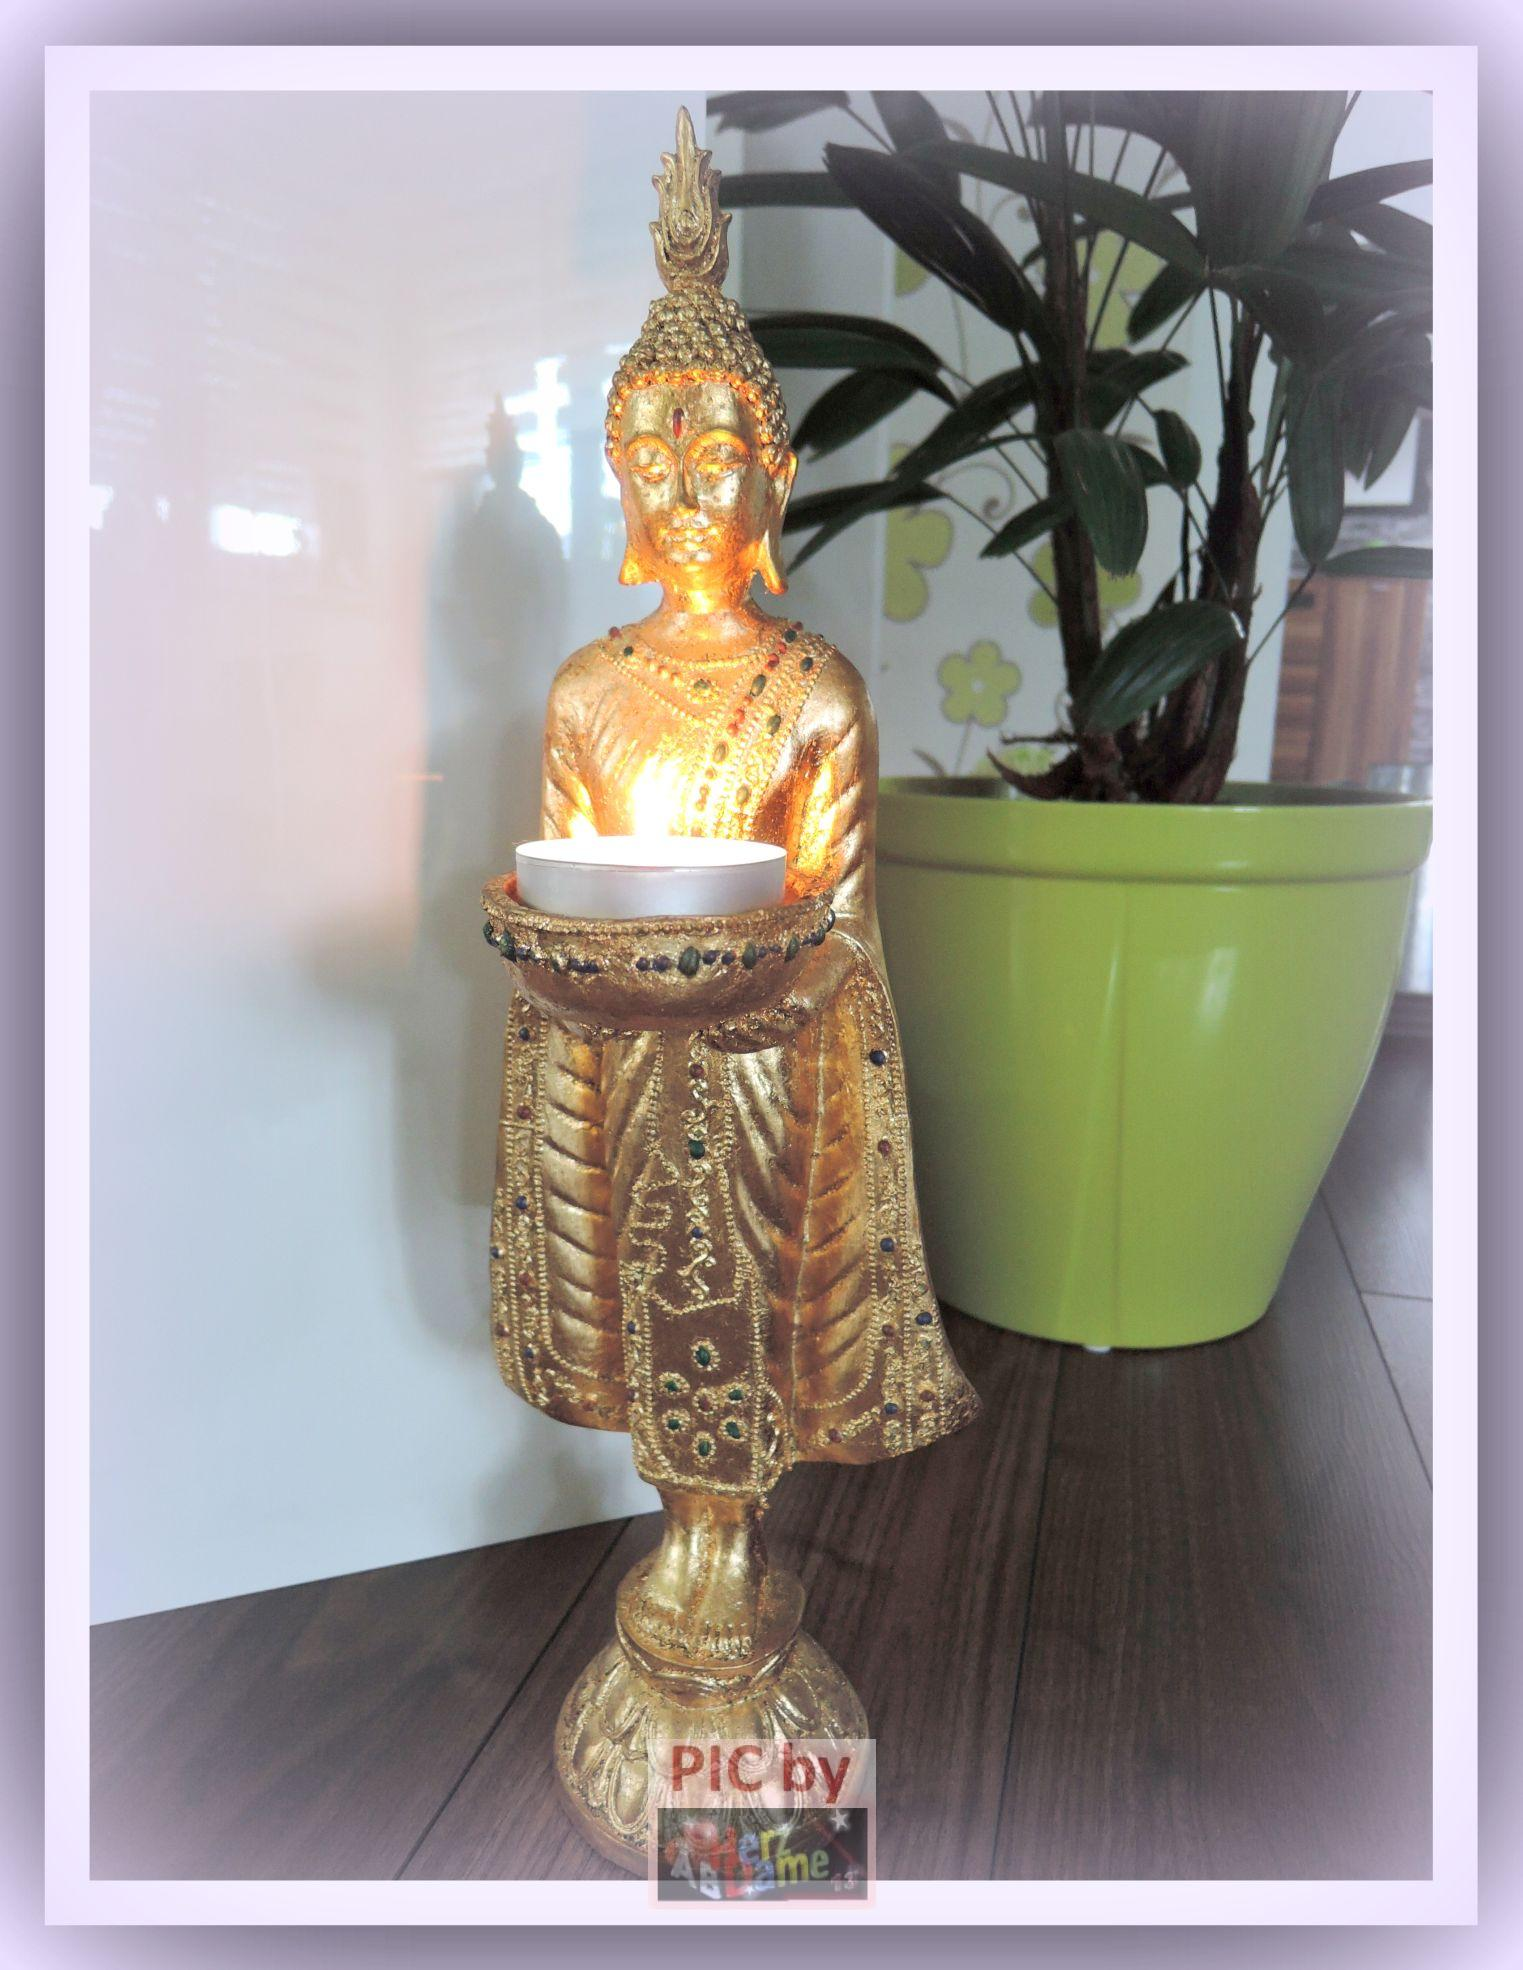 ab asia figur skulptur deko xl 45cm buddha gold teelichthalter feng shui neu ebay. Black Bedroom Furniture Sets. Home Design Ideas